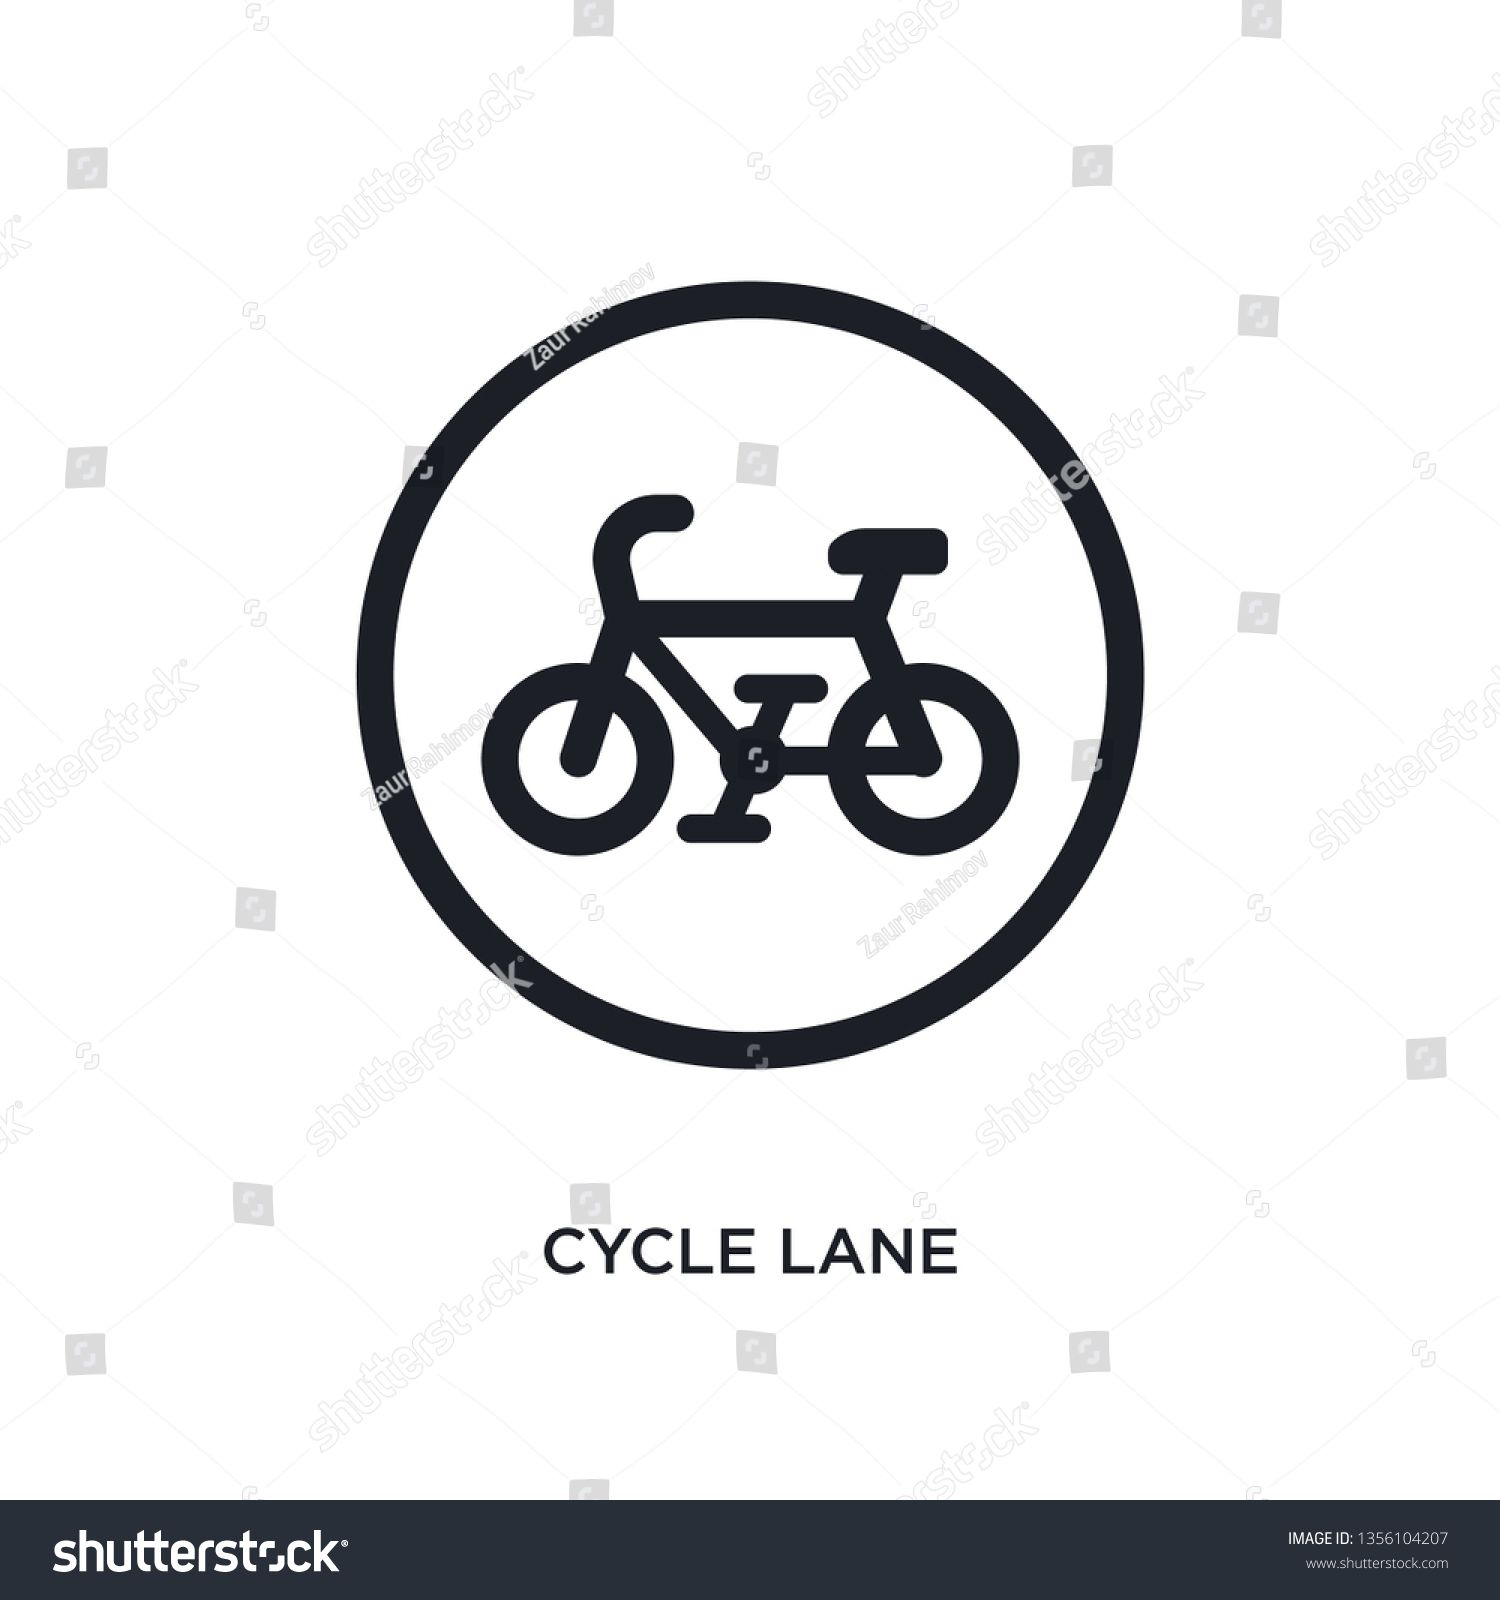 black cycle lane isolated vector icon simple element illustration from traffic signs concept vector icons cycle lane editable logo symbol design on white background can b...